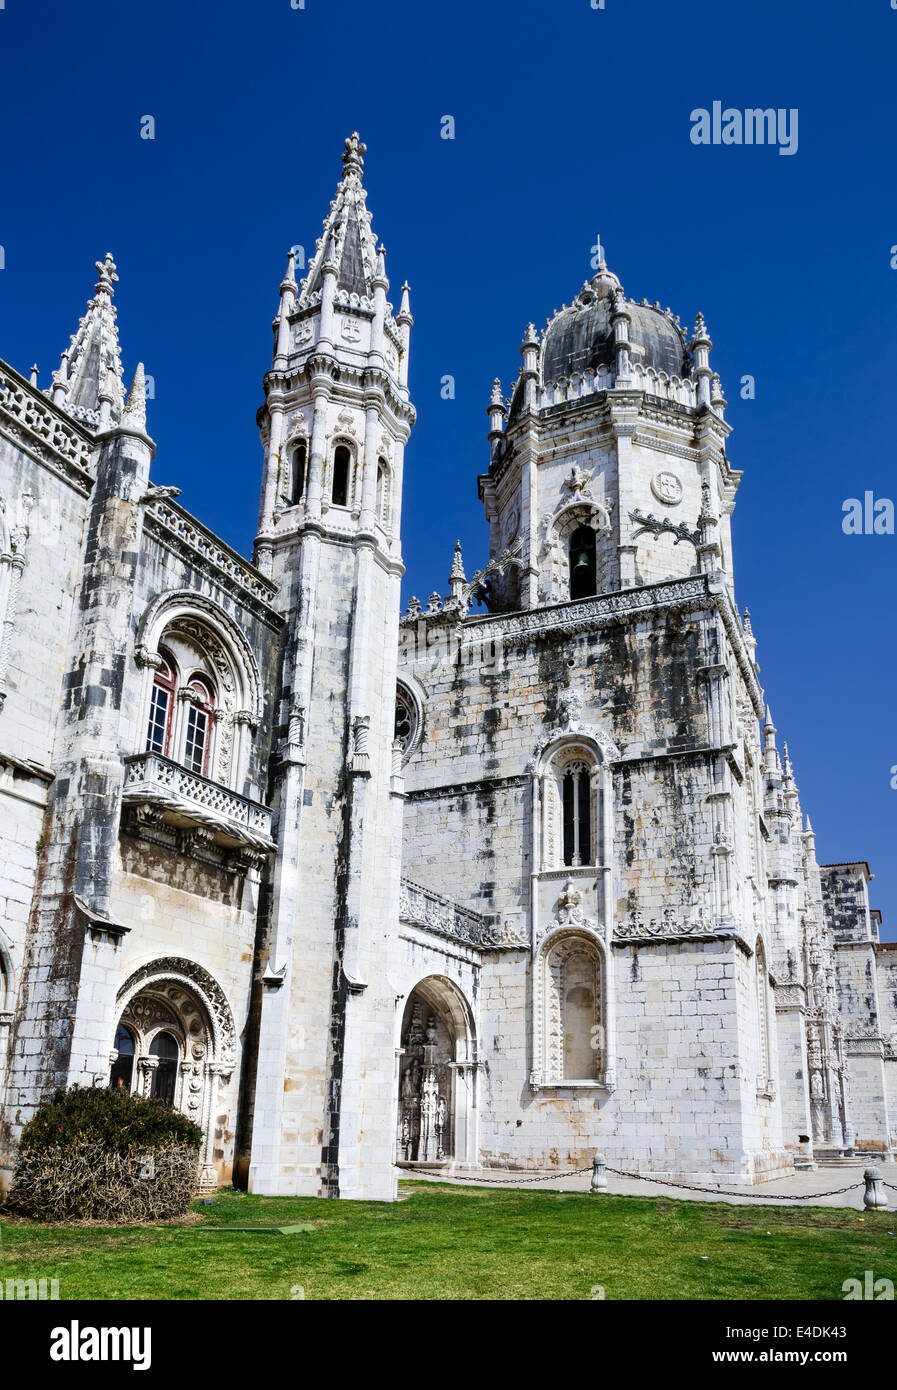 Jeronimos Monastery is located in the Belem district of Lisbon, Portugal. This monastery is one of the most prominent - Stock Image